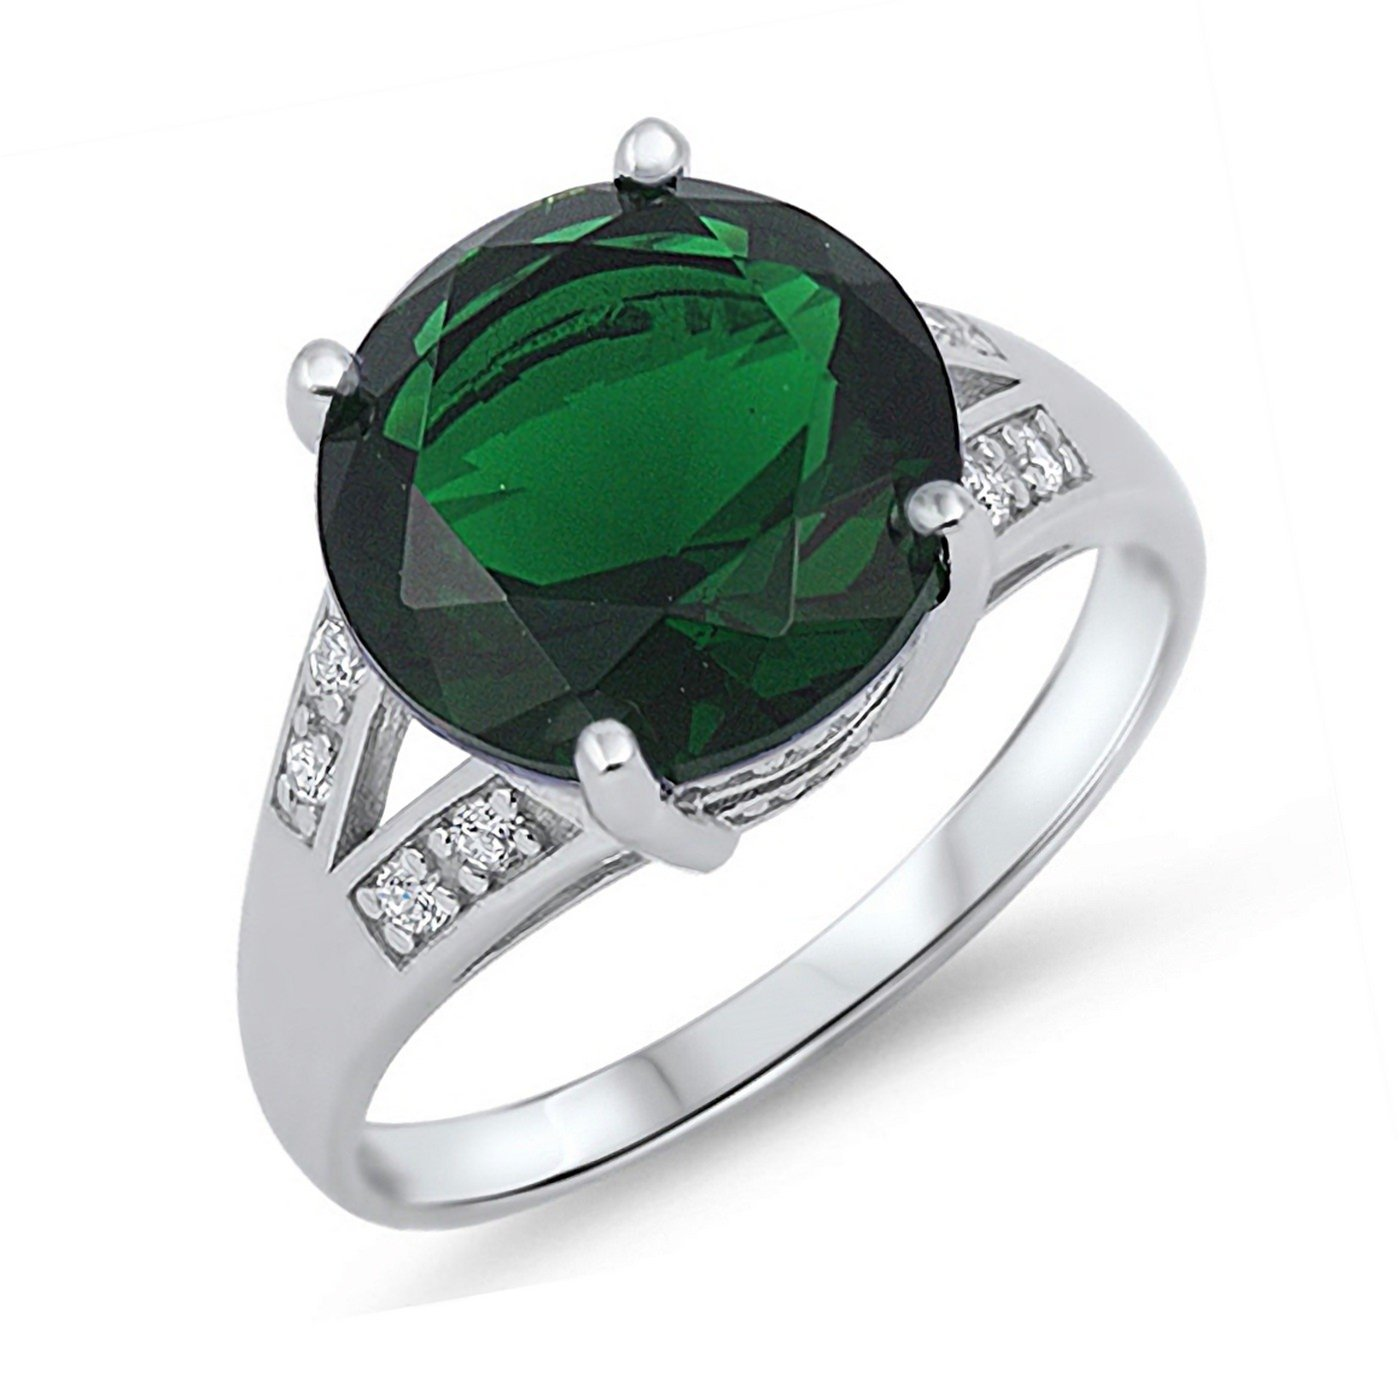 Simulated Emerald Round Cut Cubic Zirconia Womens 925 Sterling Silver Ring Sizes 6-10